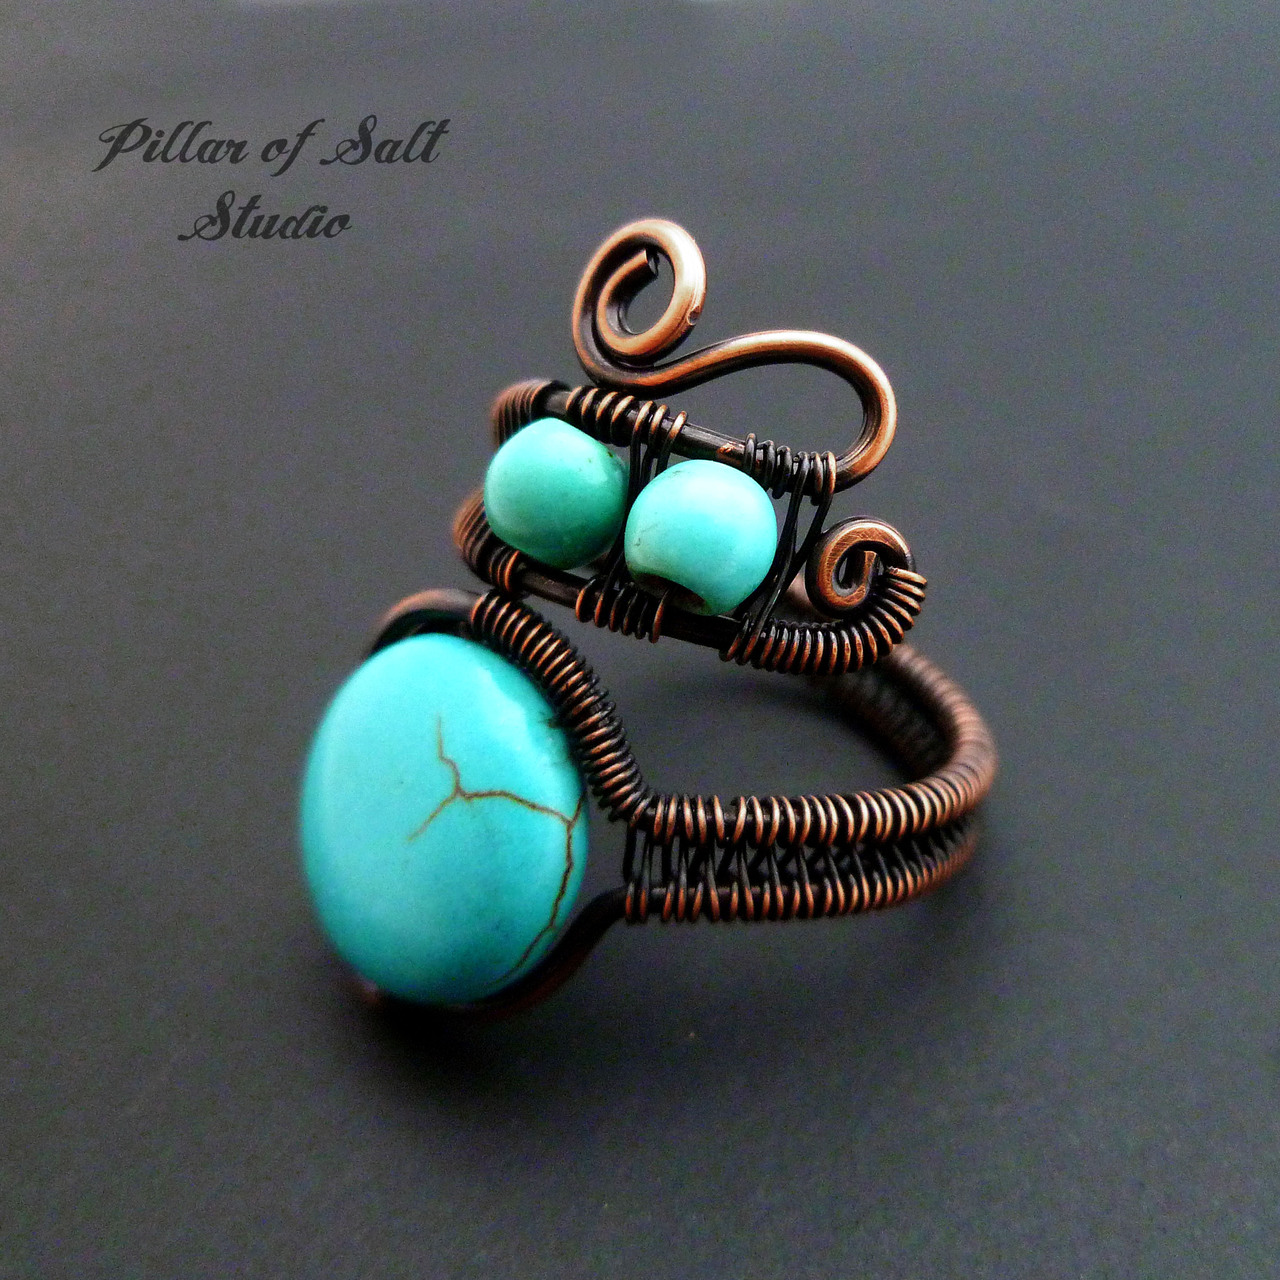 Copper and turquoise wire wrap ring / Pillar of Salt Studio